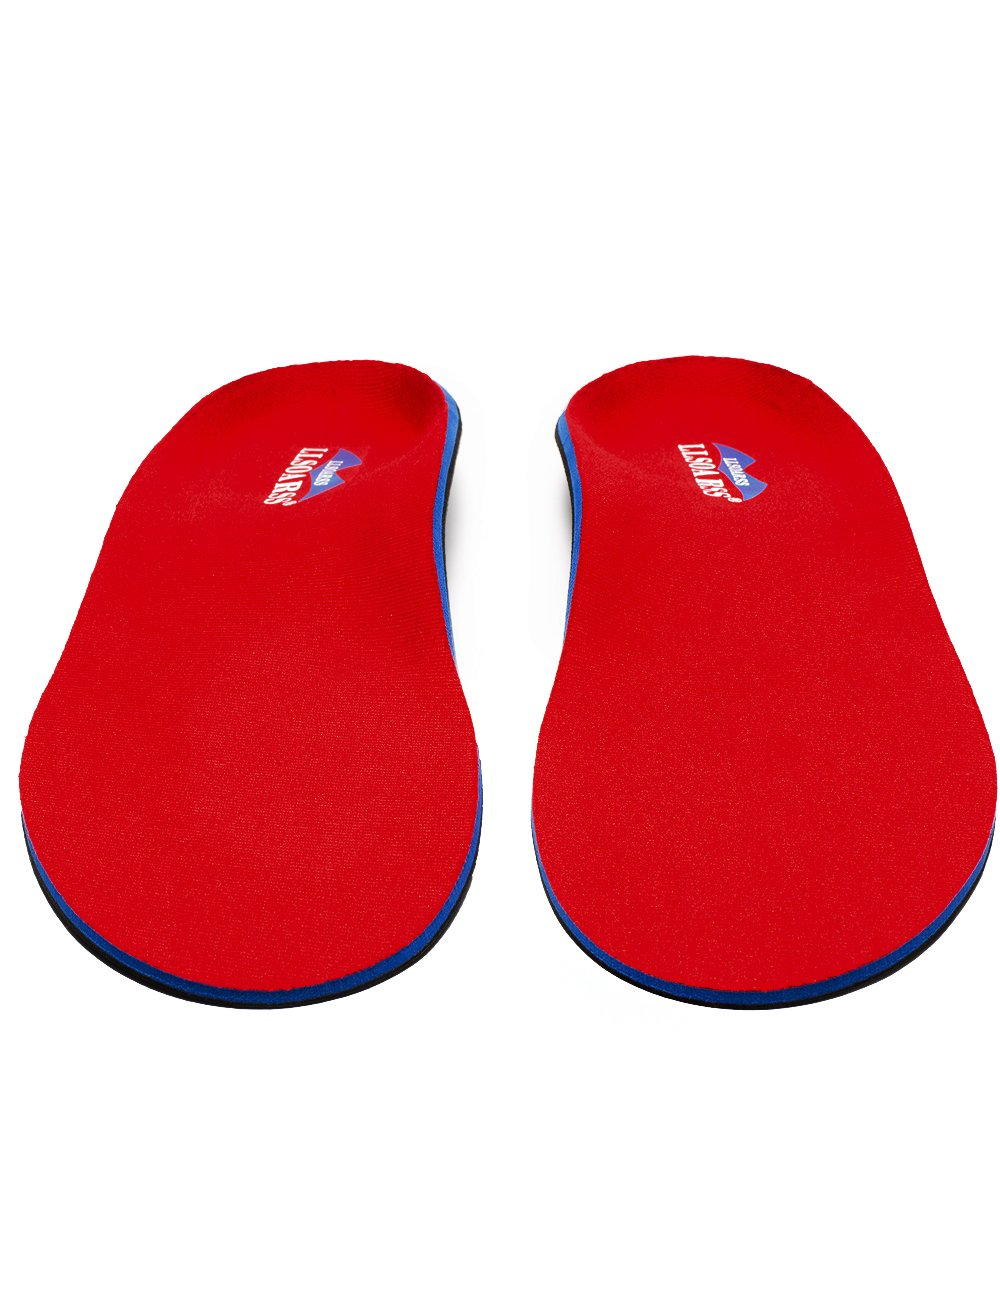 LLSOARSS Orthotic Insoles for Flat Feet - Arch Support Shoe Inserts for Plantar Fasciitis (Men 12-12 1/2, Red) by LLSOARSS (Image #6)